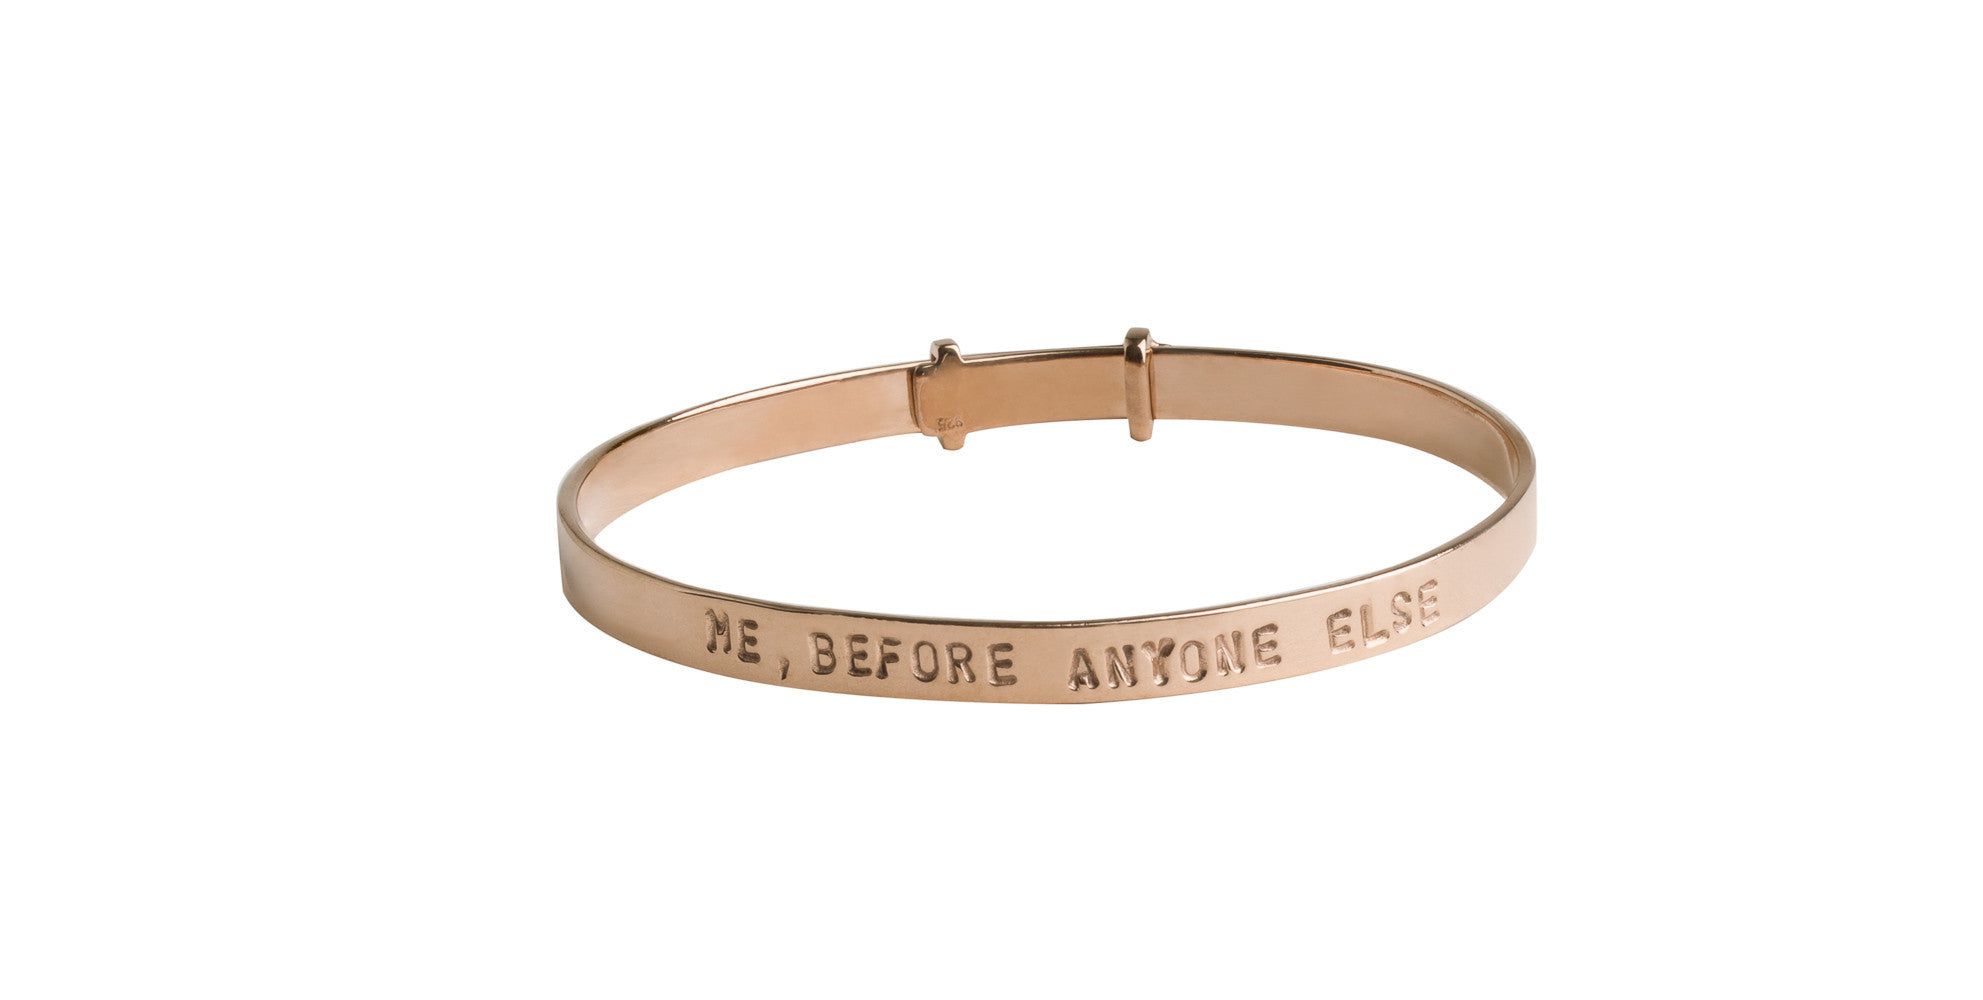 ME, BEFORE ANYONE ELSE Adjustable Bangle